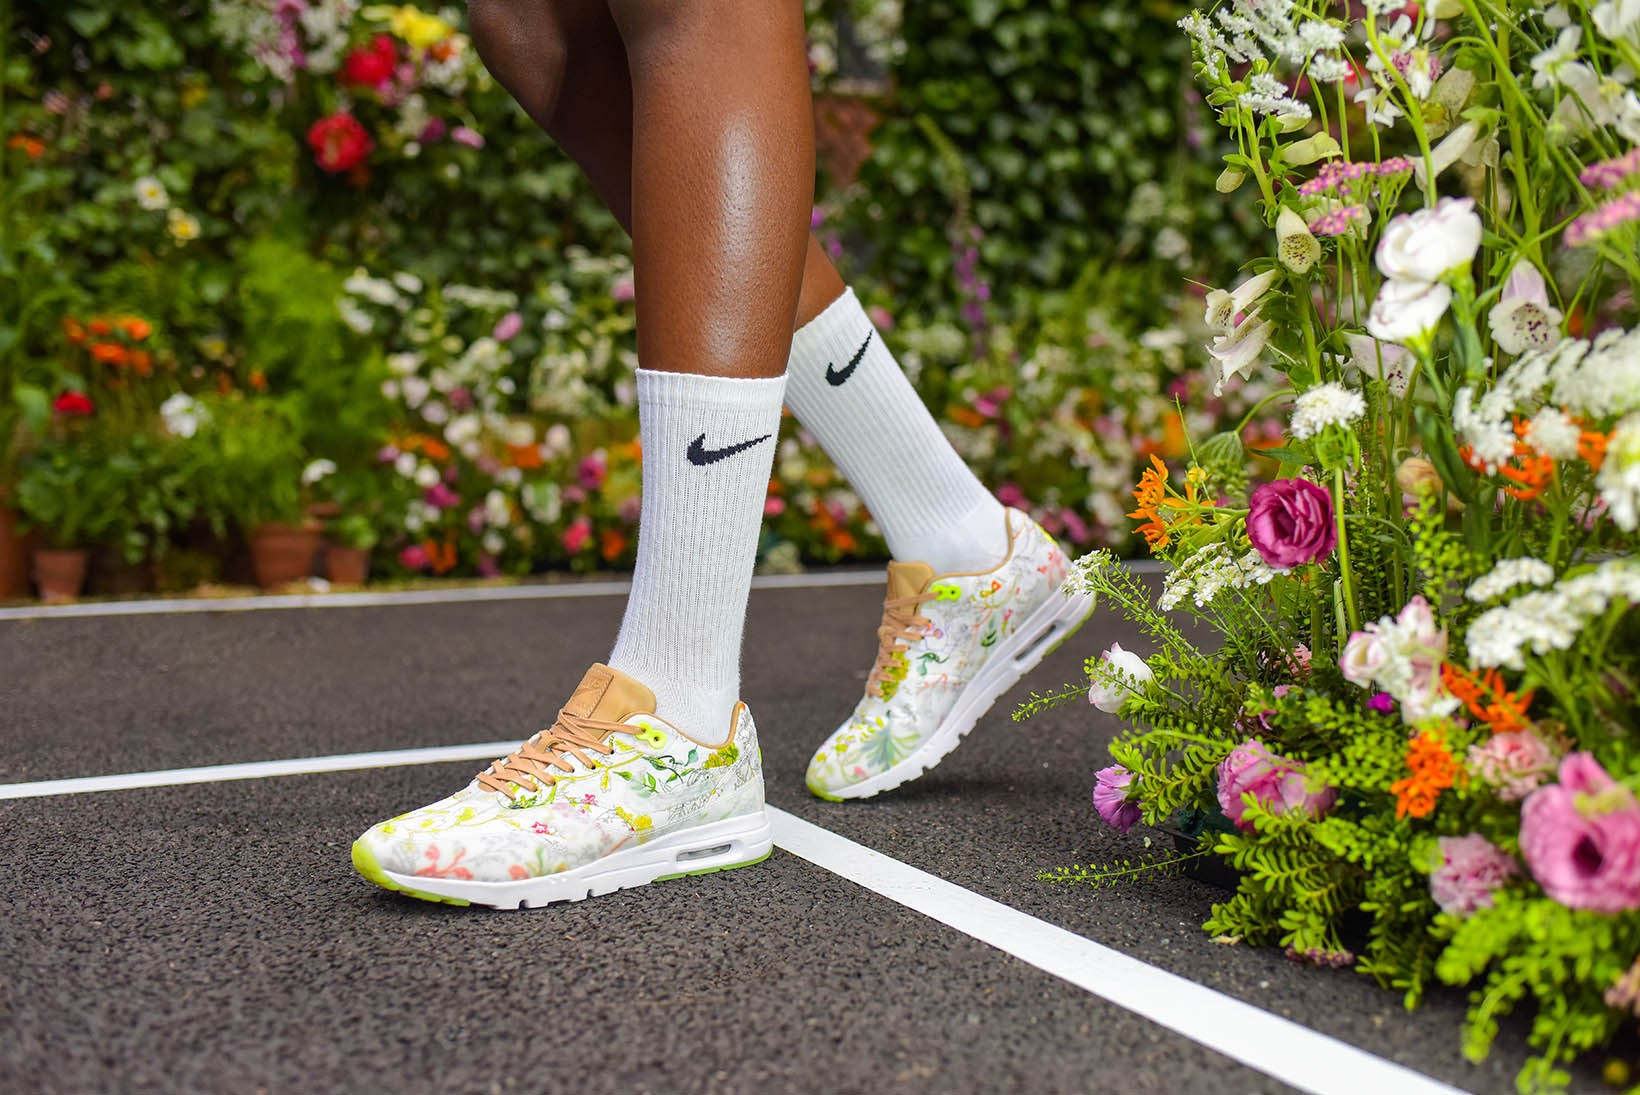 Liberty London x NikeCourt-3